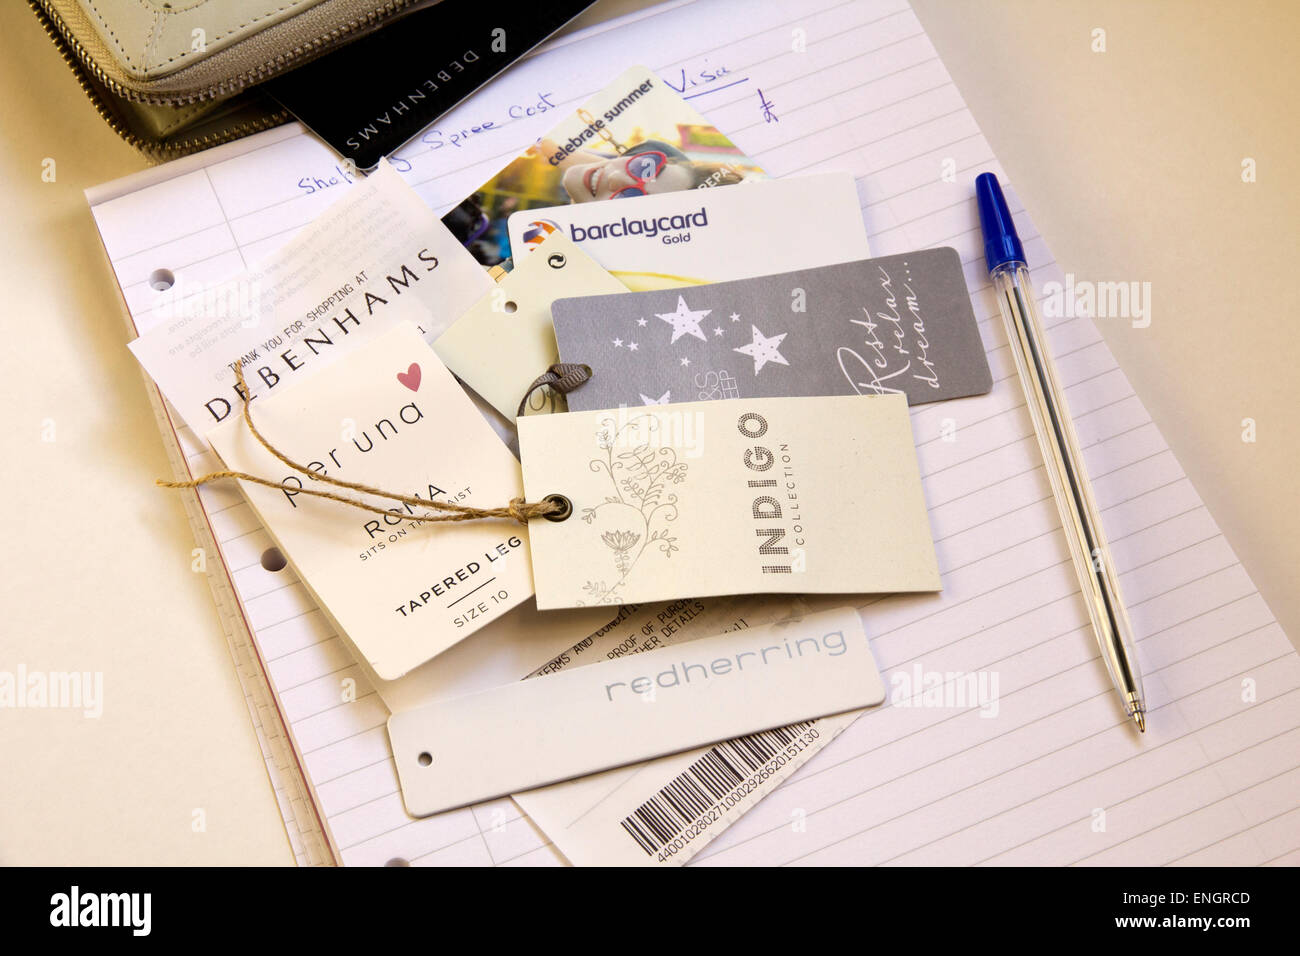 Price Tags, clothing tags, spending cost on note pad, pen. - Stock Image